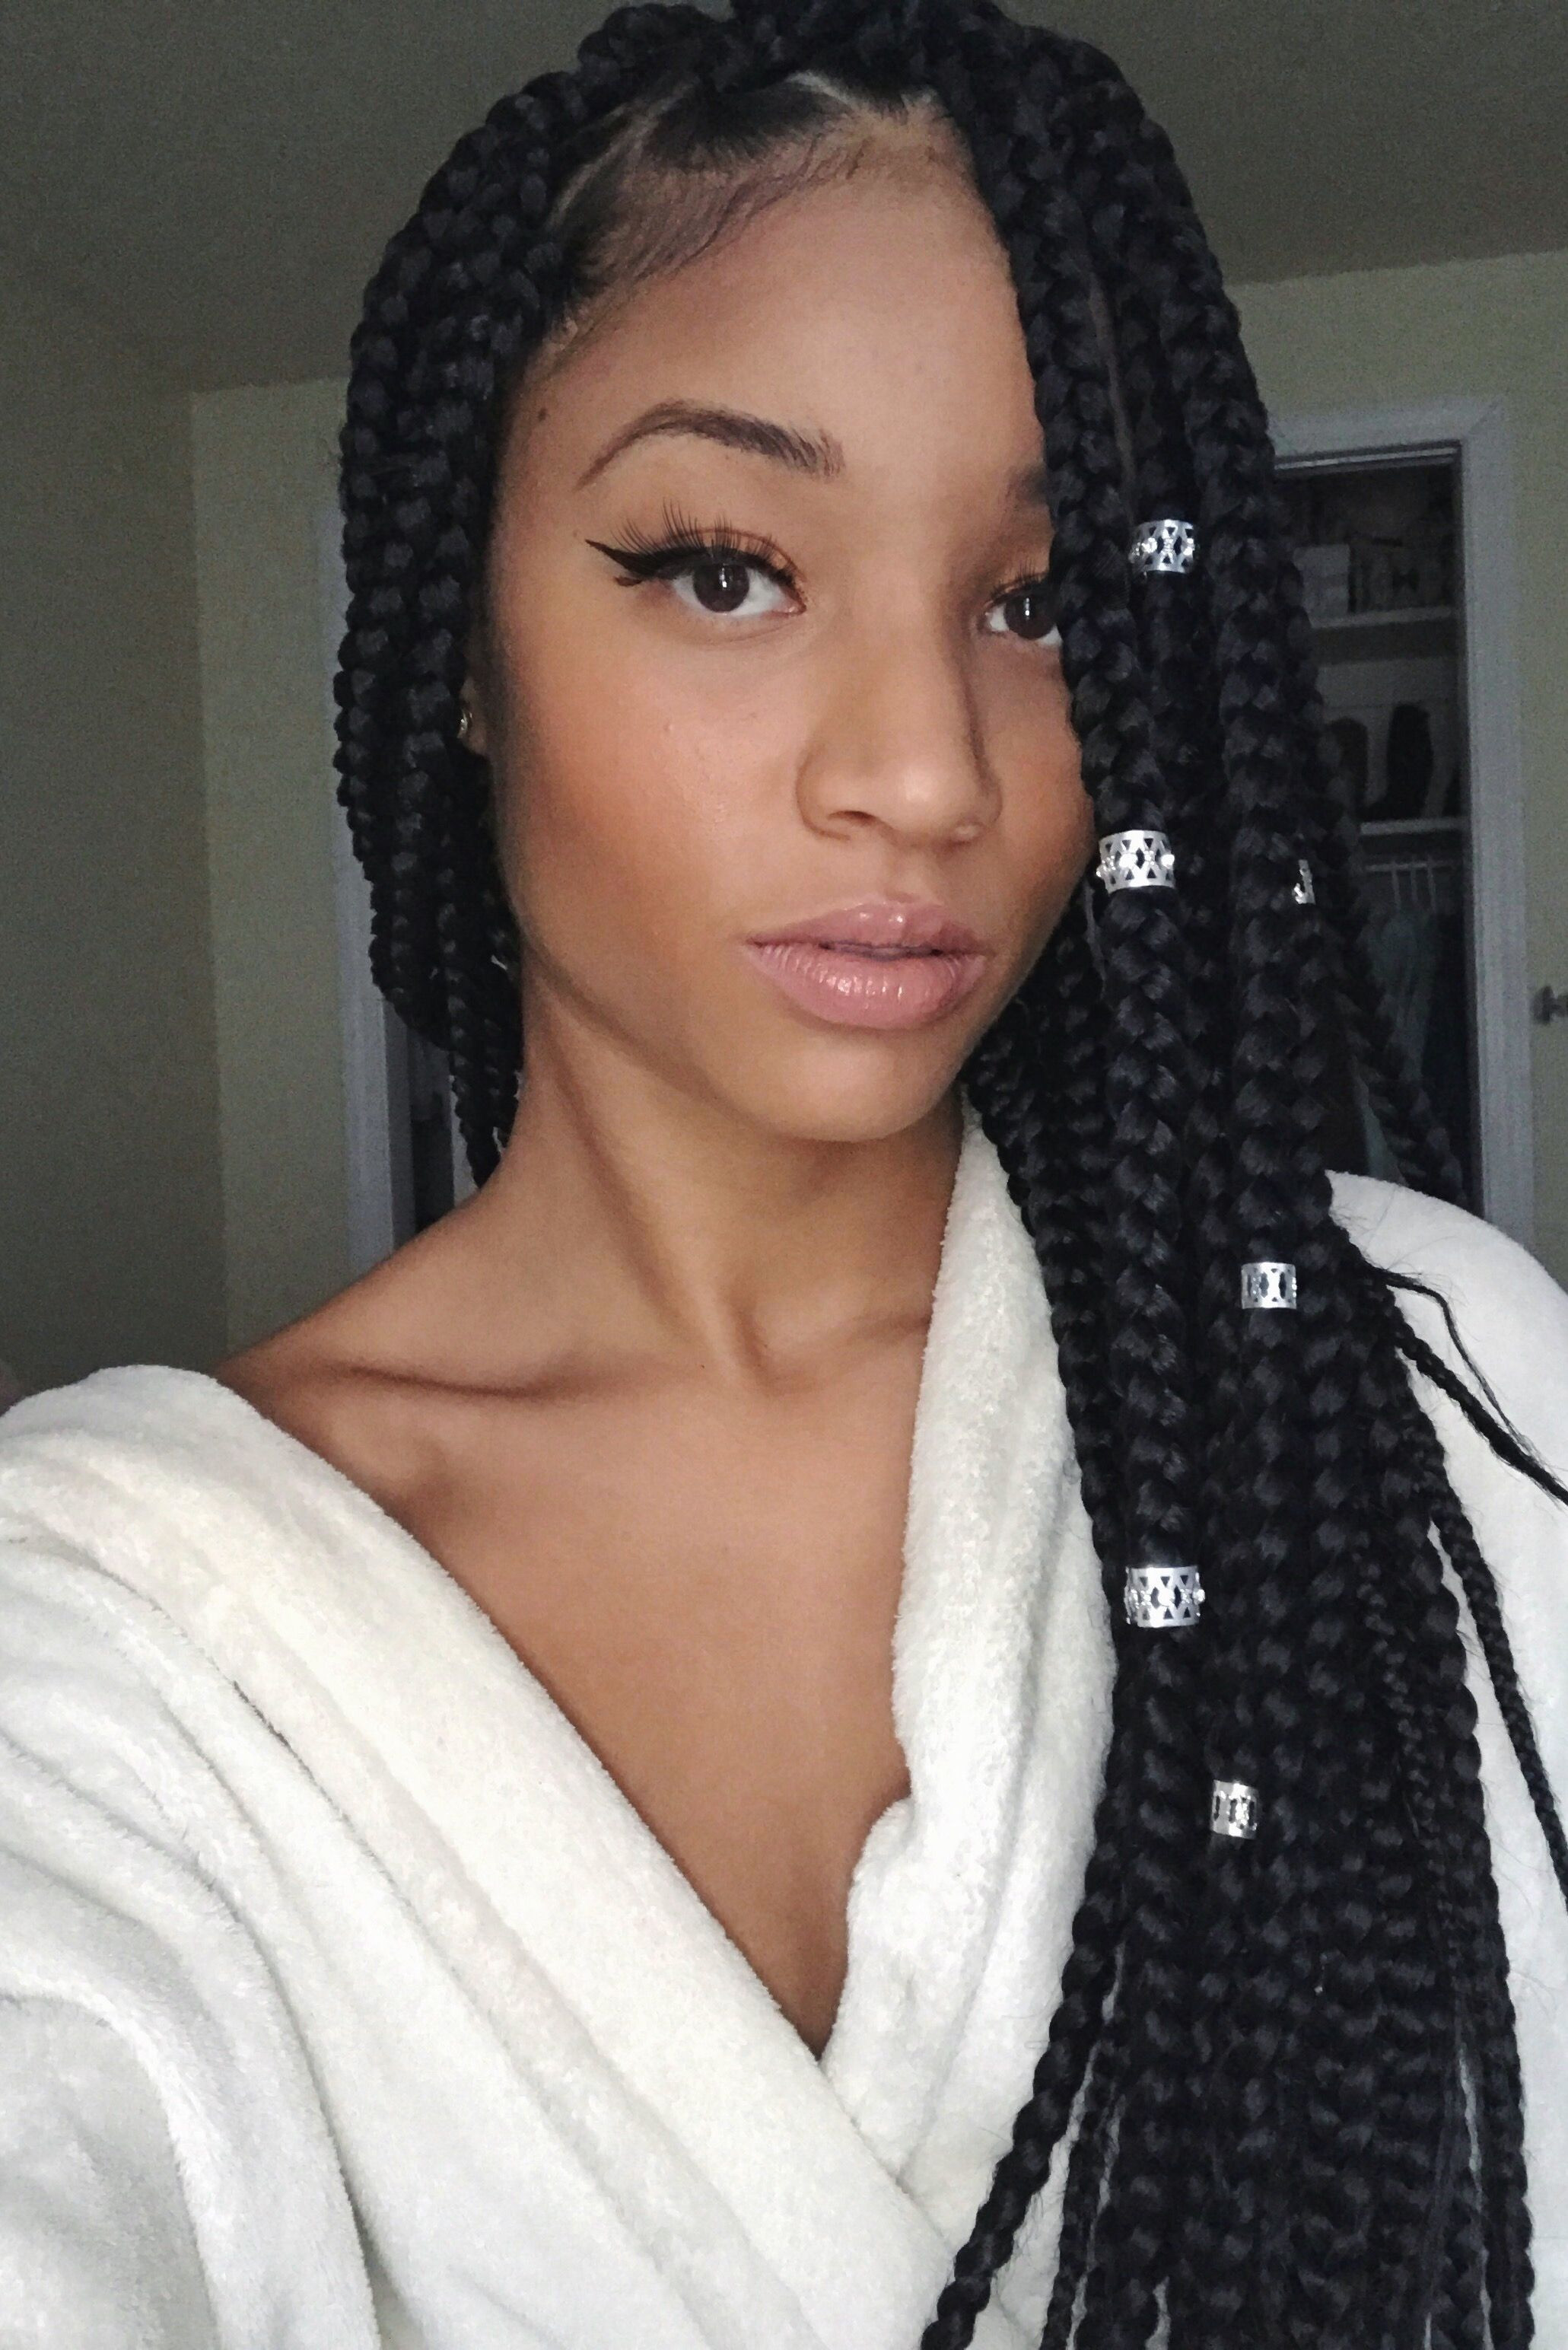 Best ideas about Hairstyles For Light Skin Females . Save or Pin Lightskin girl box braids Hair she es Now.